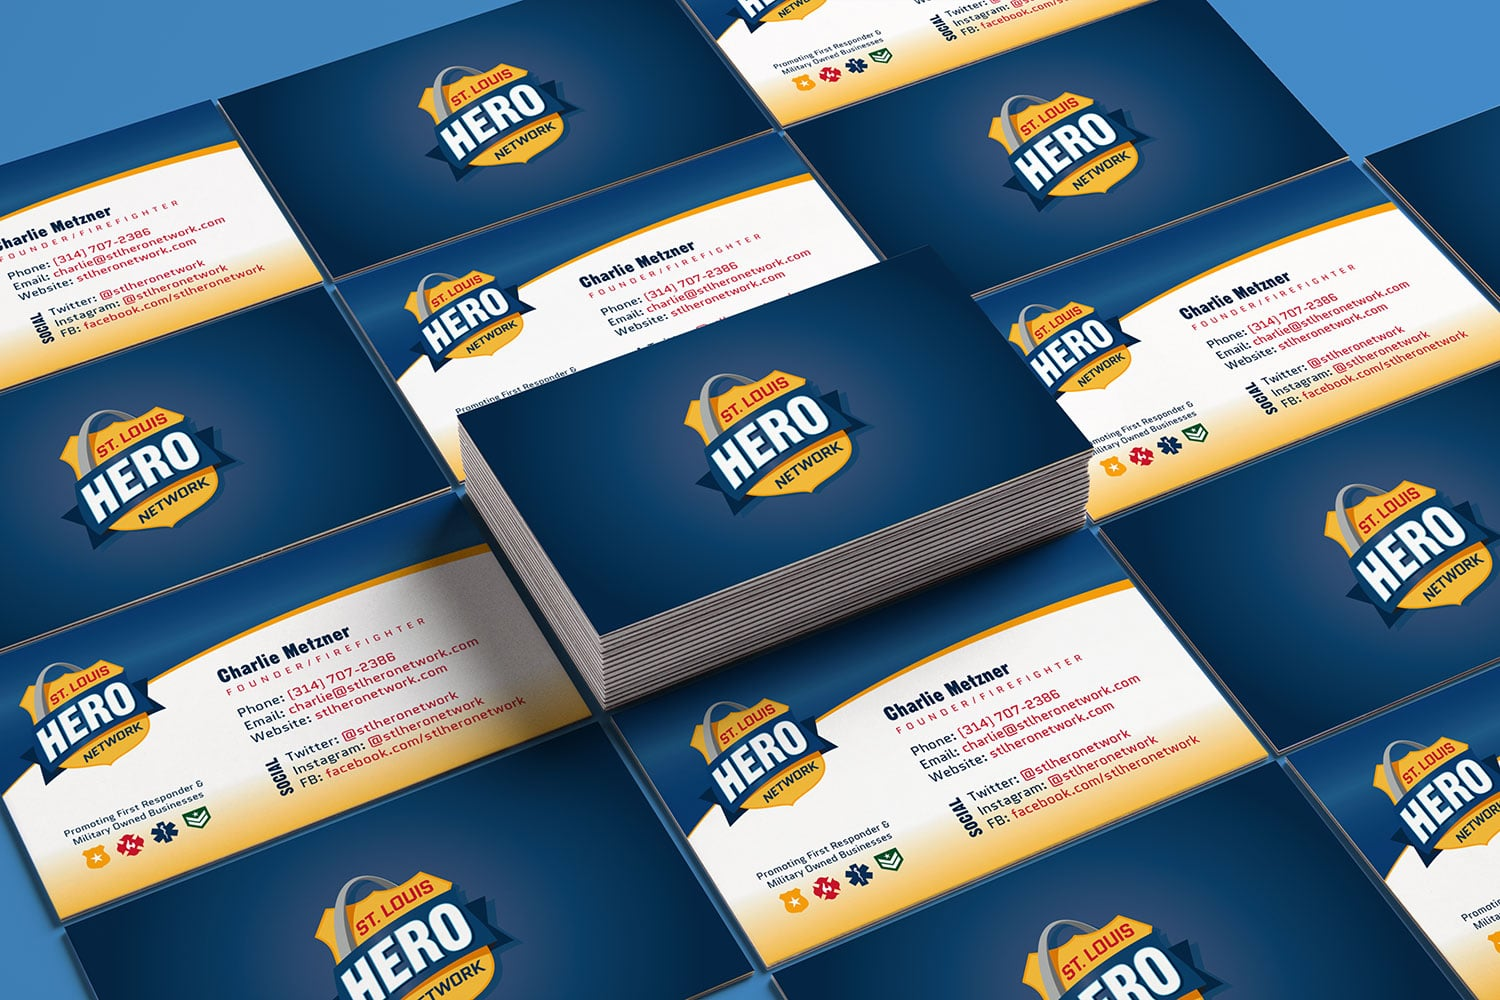 STL Hero Network Business Card